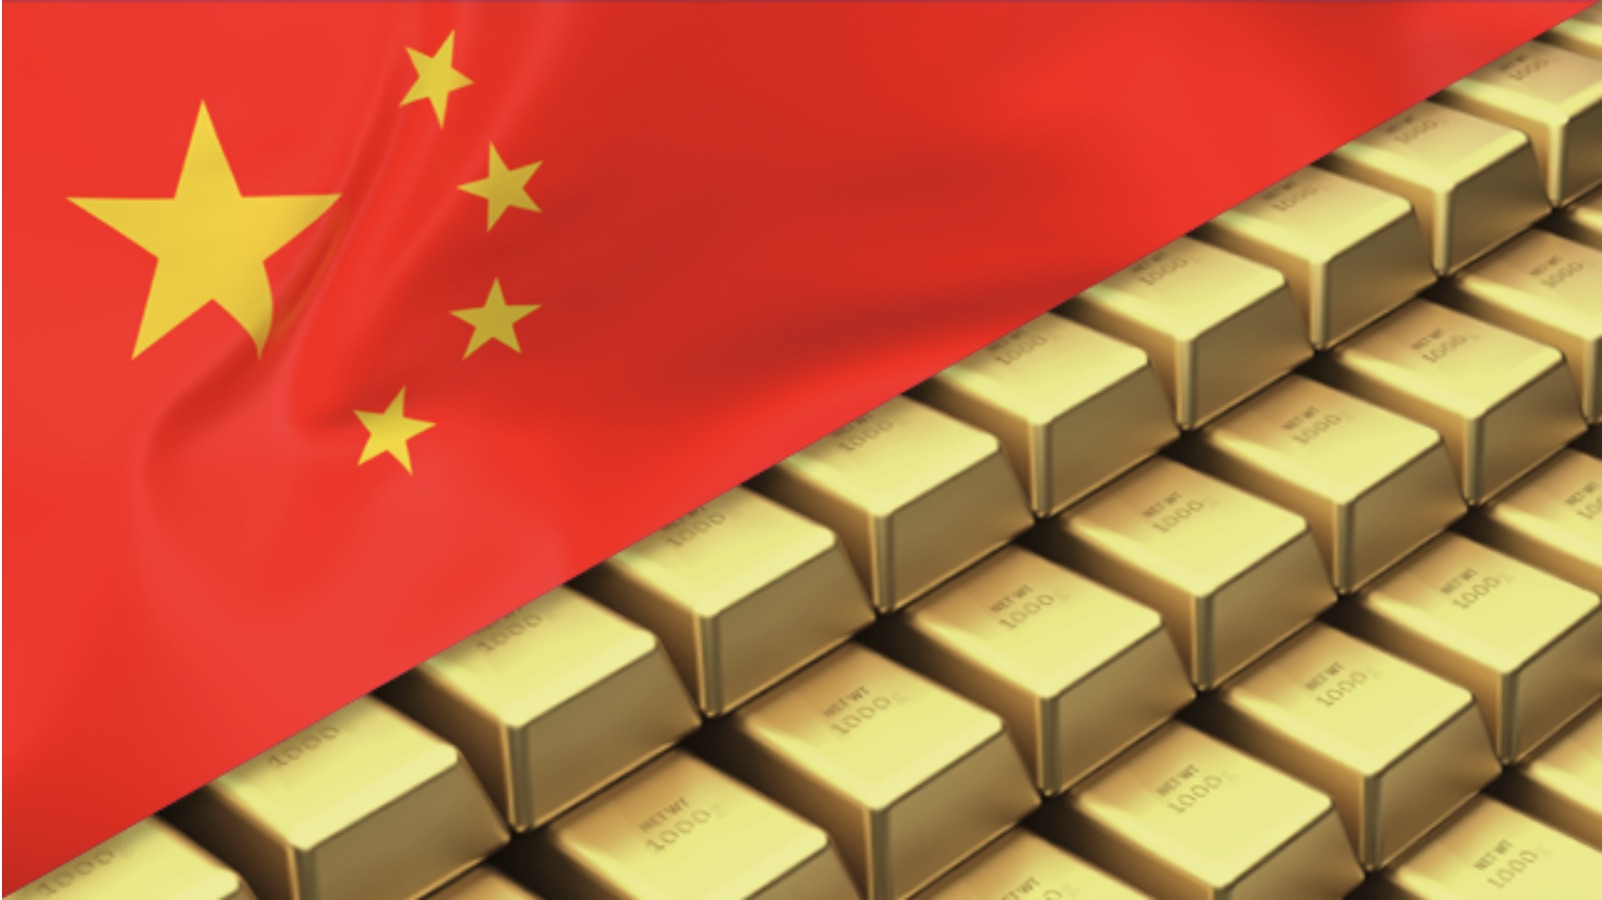 king-world-news-yes-china-plans-to-send-gold-prices-dramatically-higher